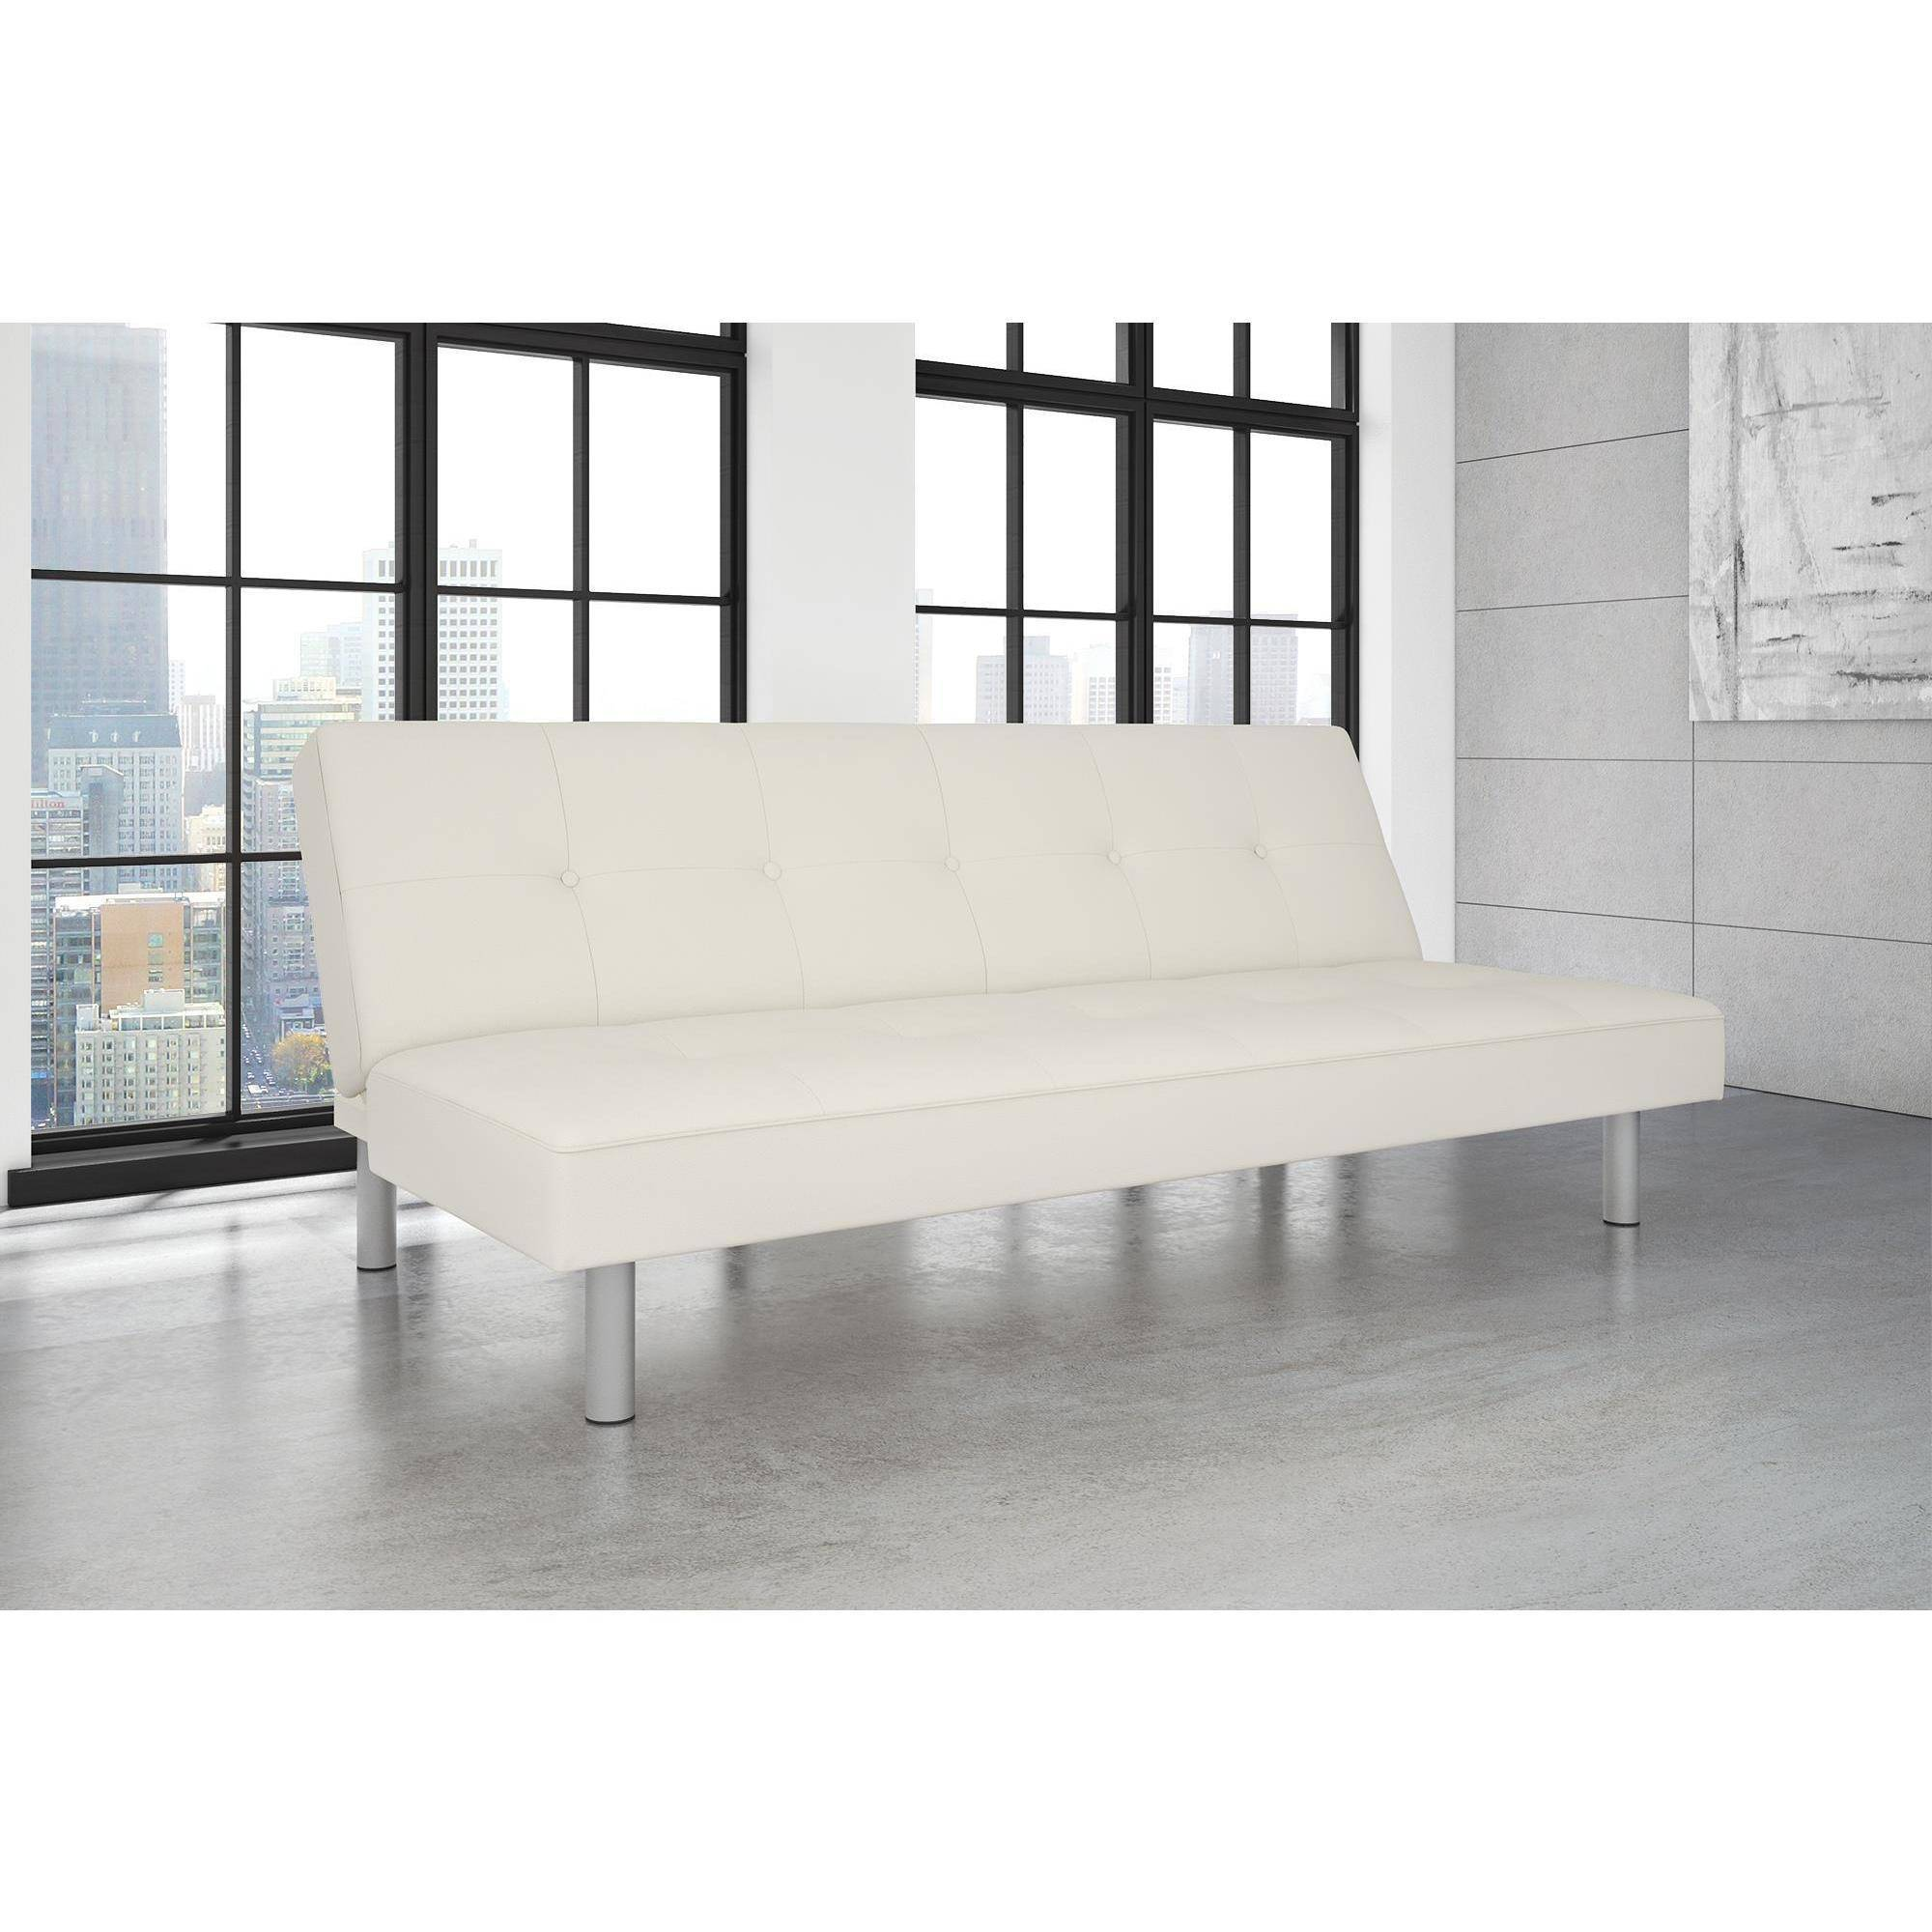 Dorel Home Nola Futon, White Faux Leather by Dorel Home Products